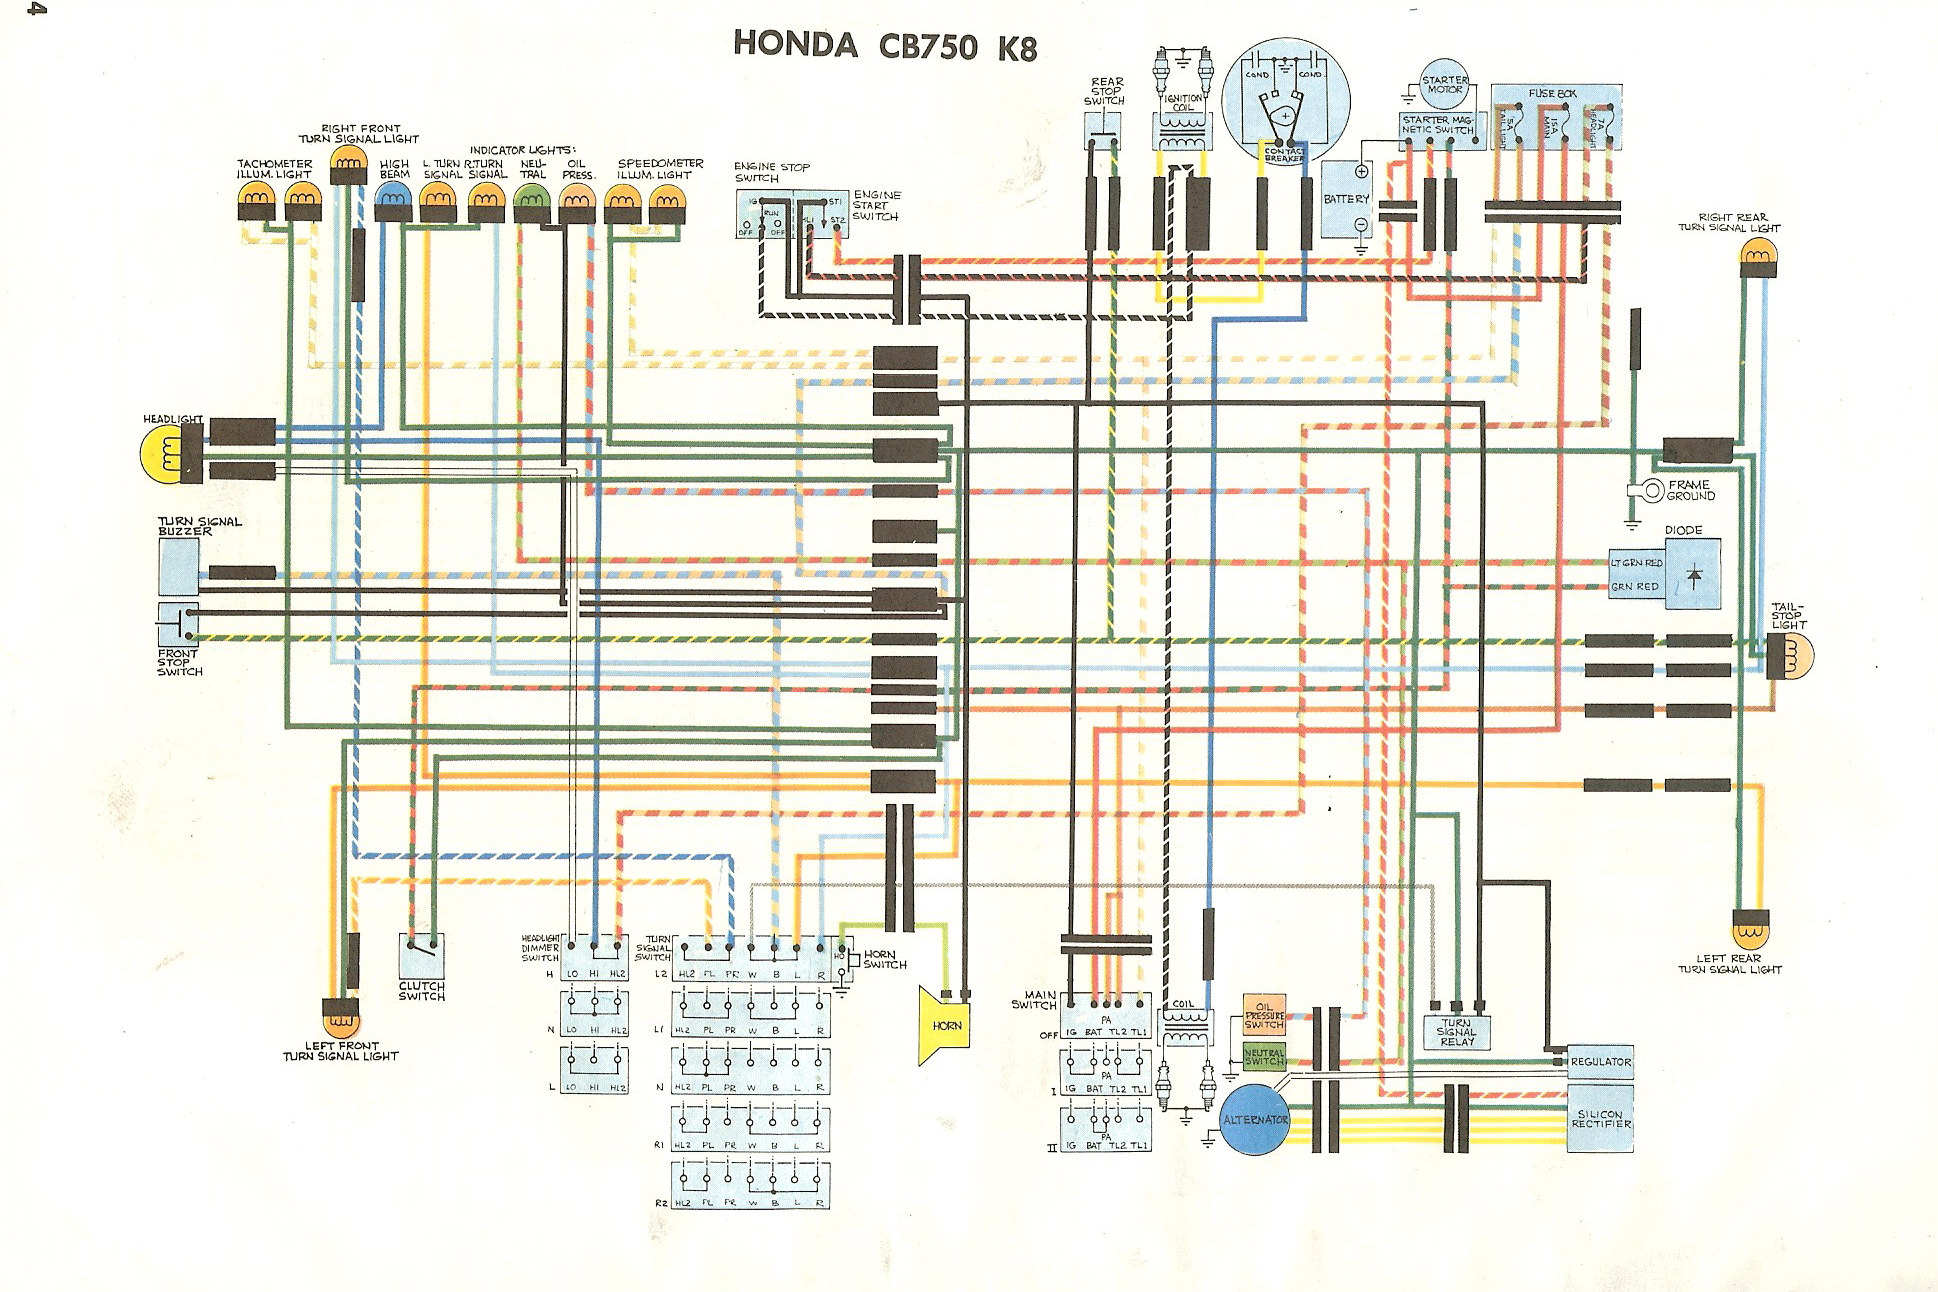 WD750K8 cb750k wiring diagram motorcycle ignition wiring diagram \u2022 wiring  at suagrazia.org